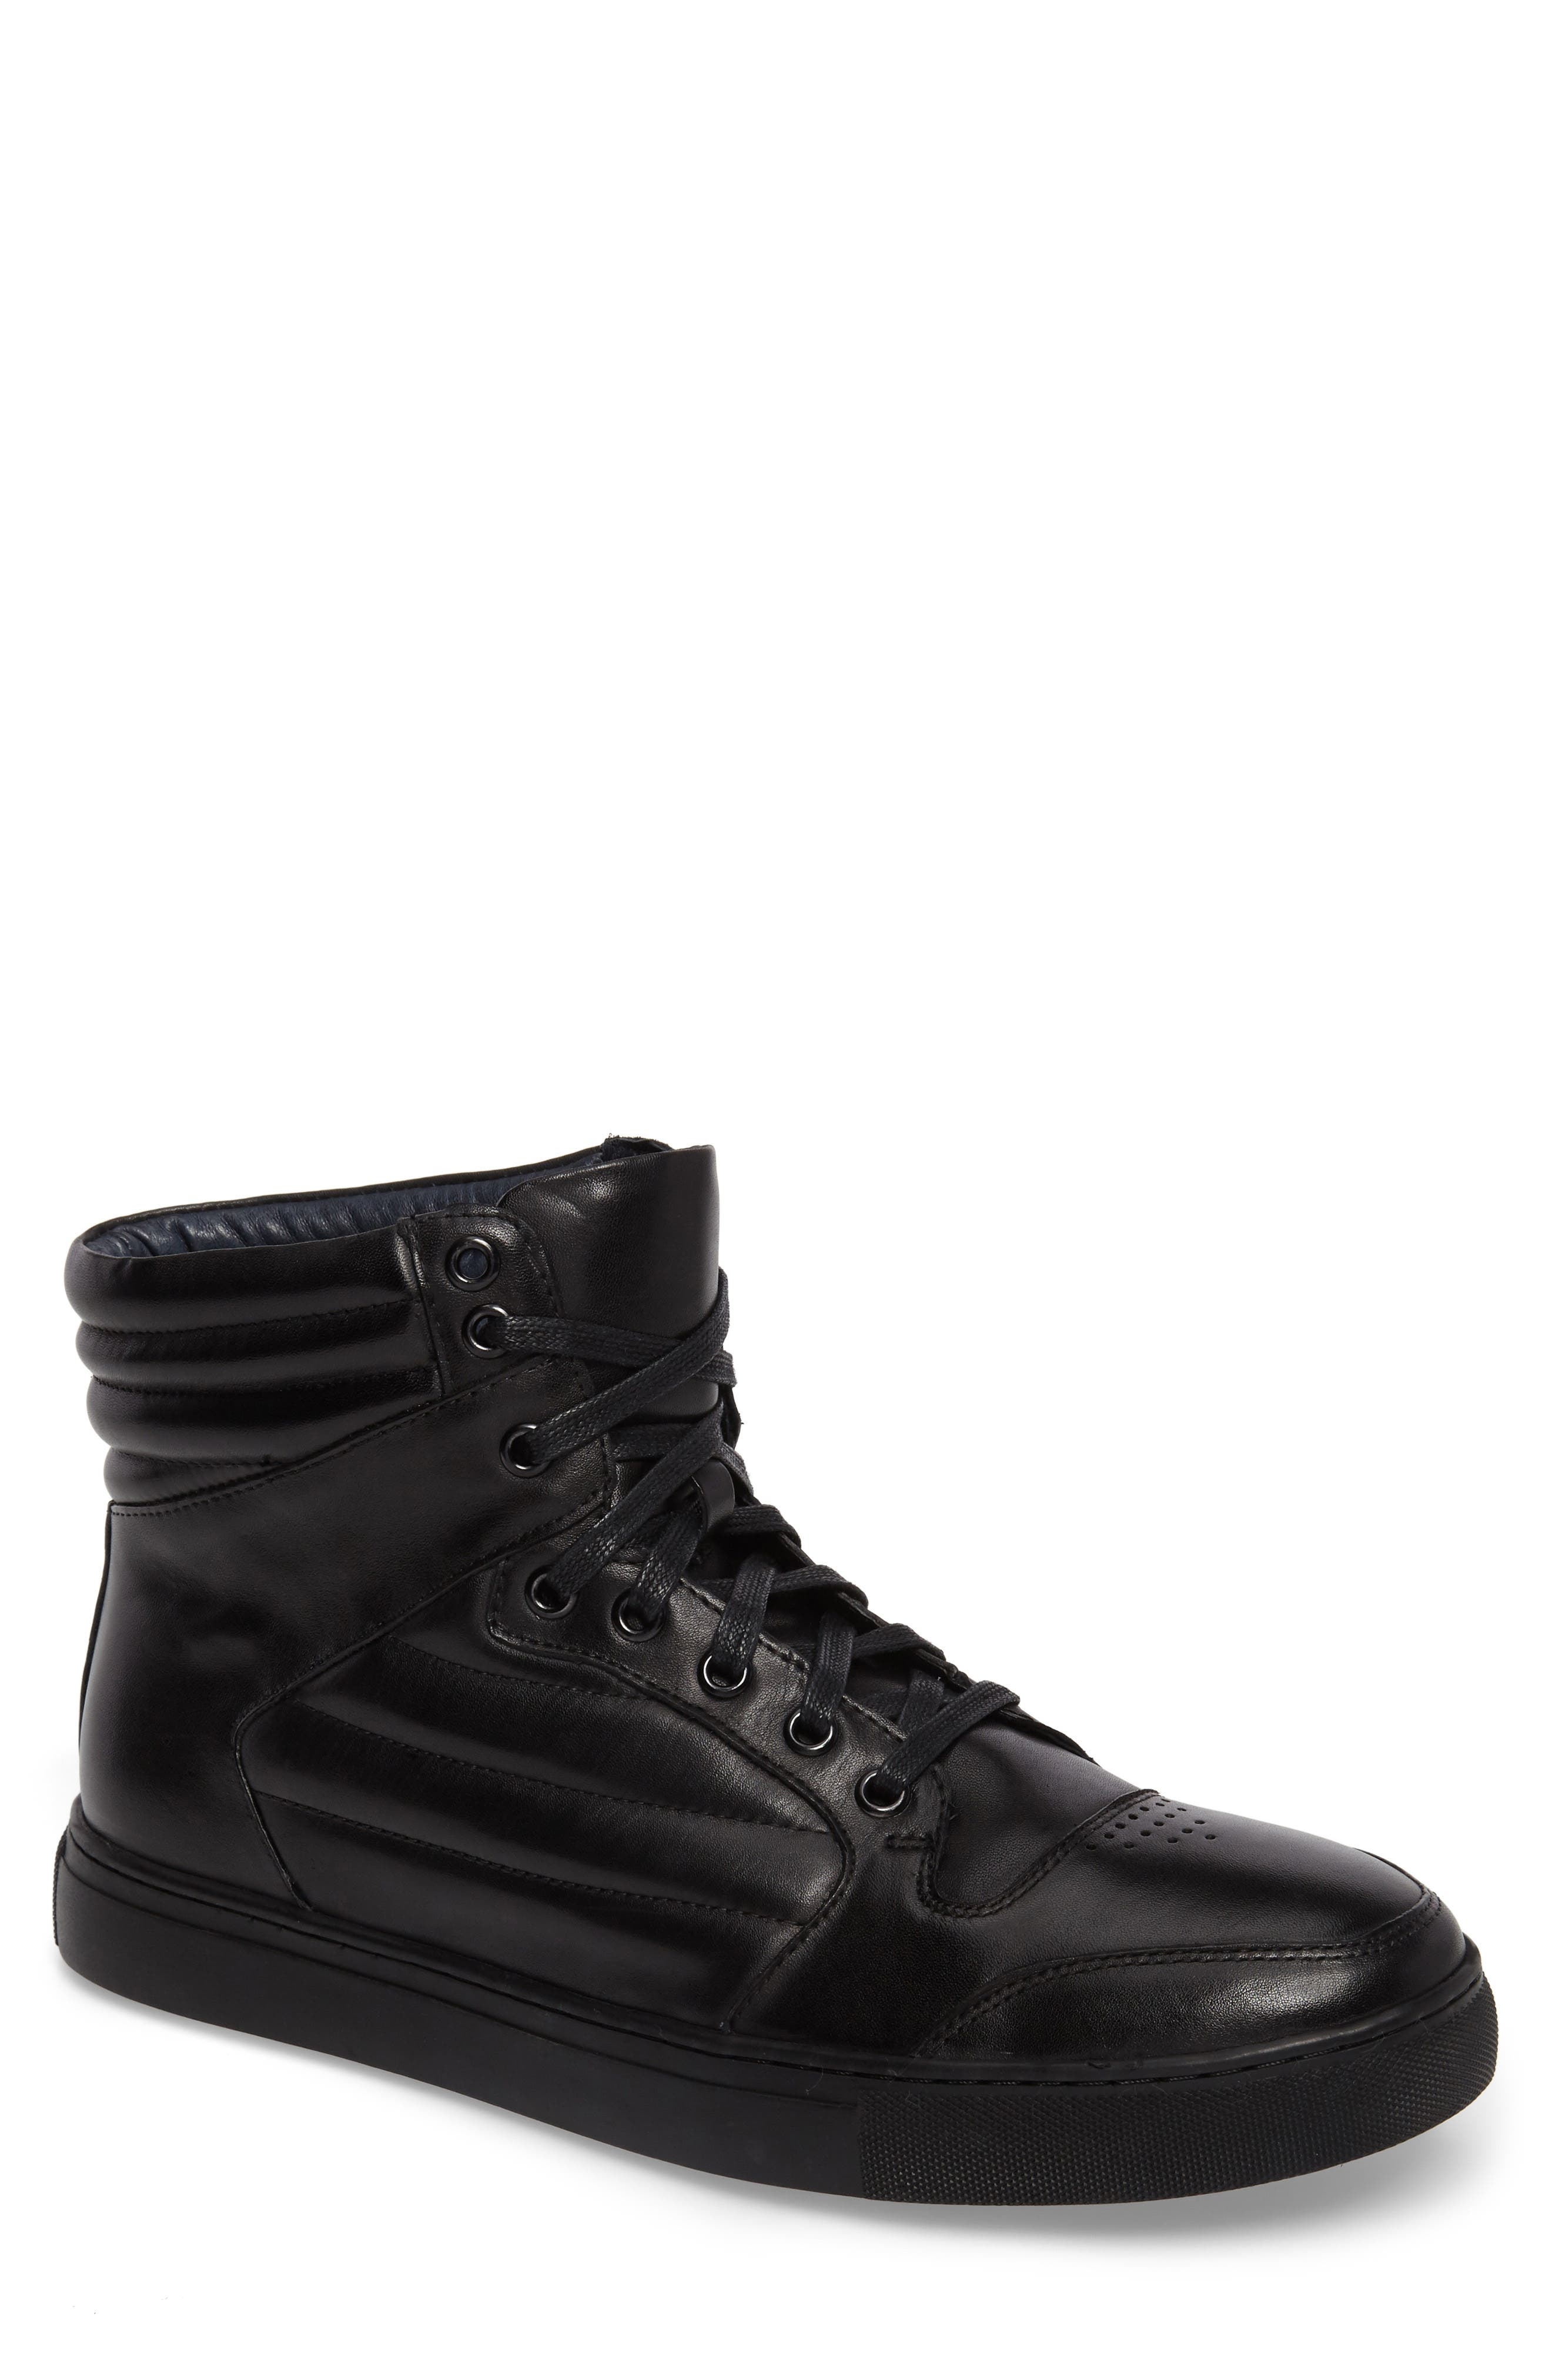 Vacdes High Top Sneaker,                             Main thumbnail 1, color,                             Black Leather